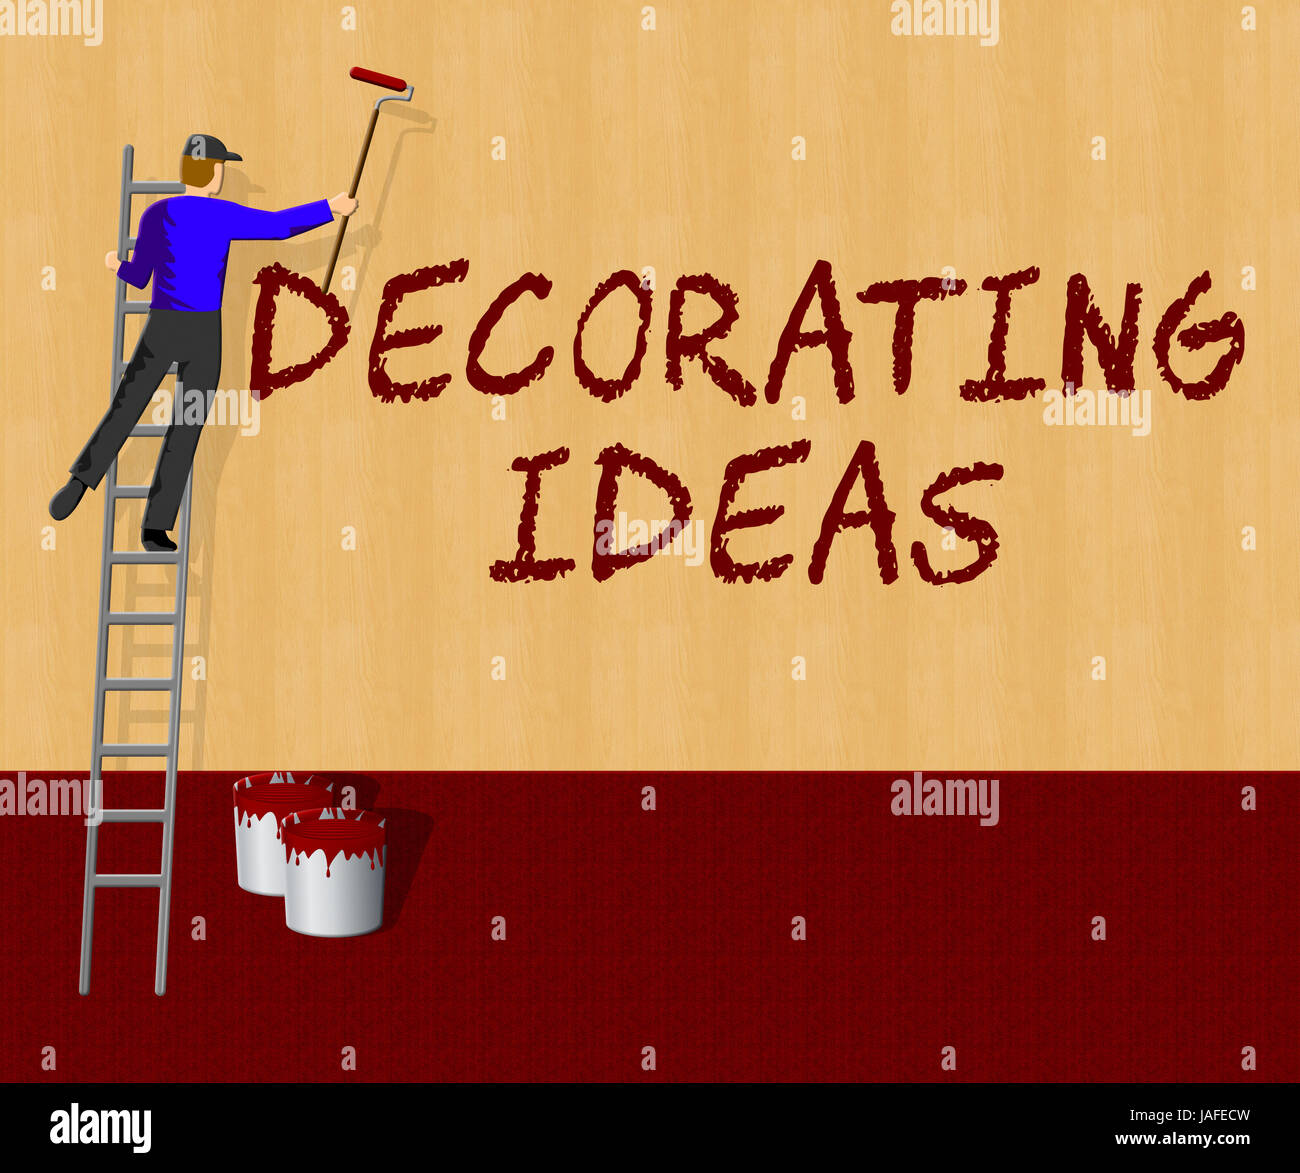 Decorating Ideas Showing Decoration Advice 3d Illustration